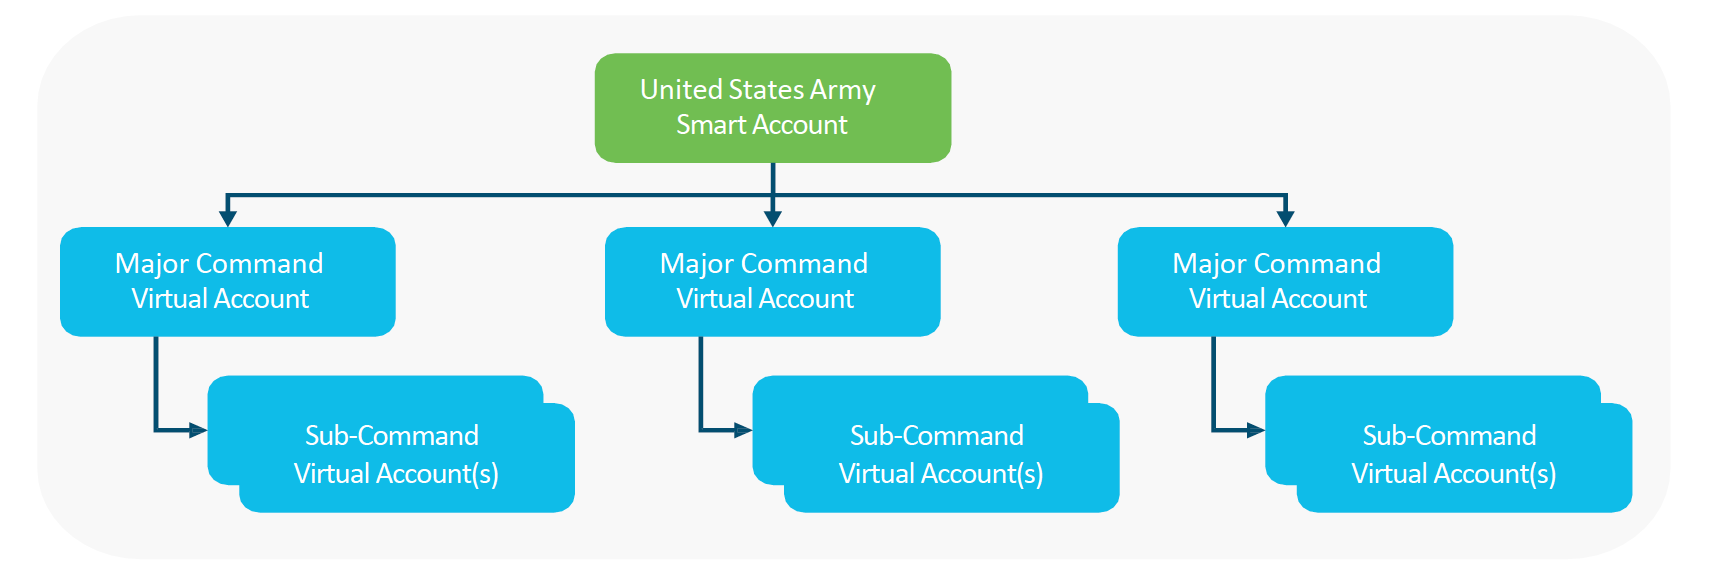 Keep Command/Organization owned licenses organized with Virtual Accounts